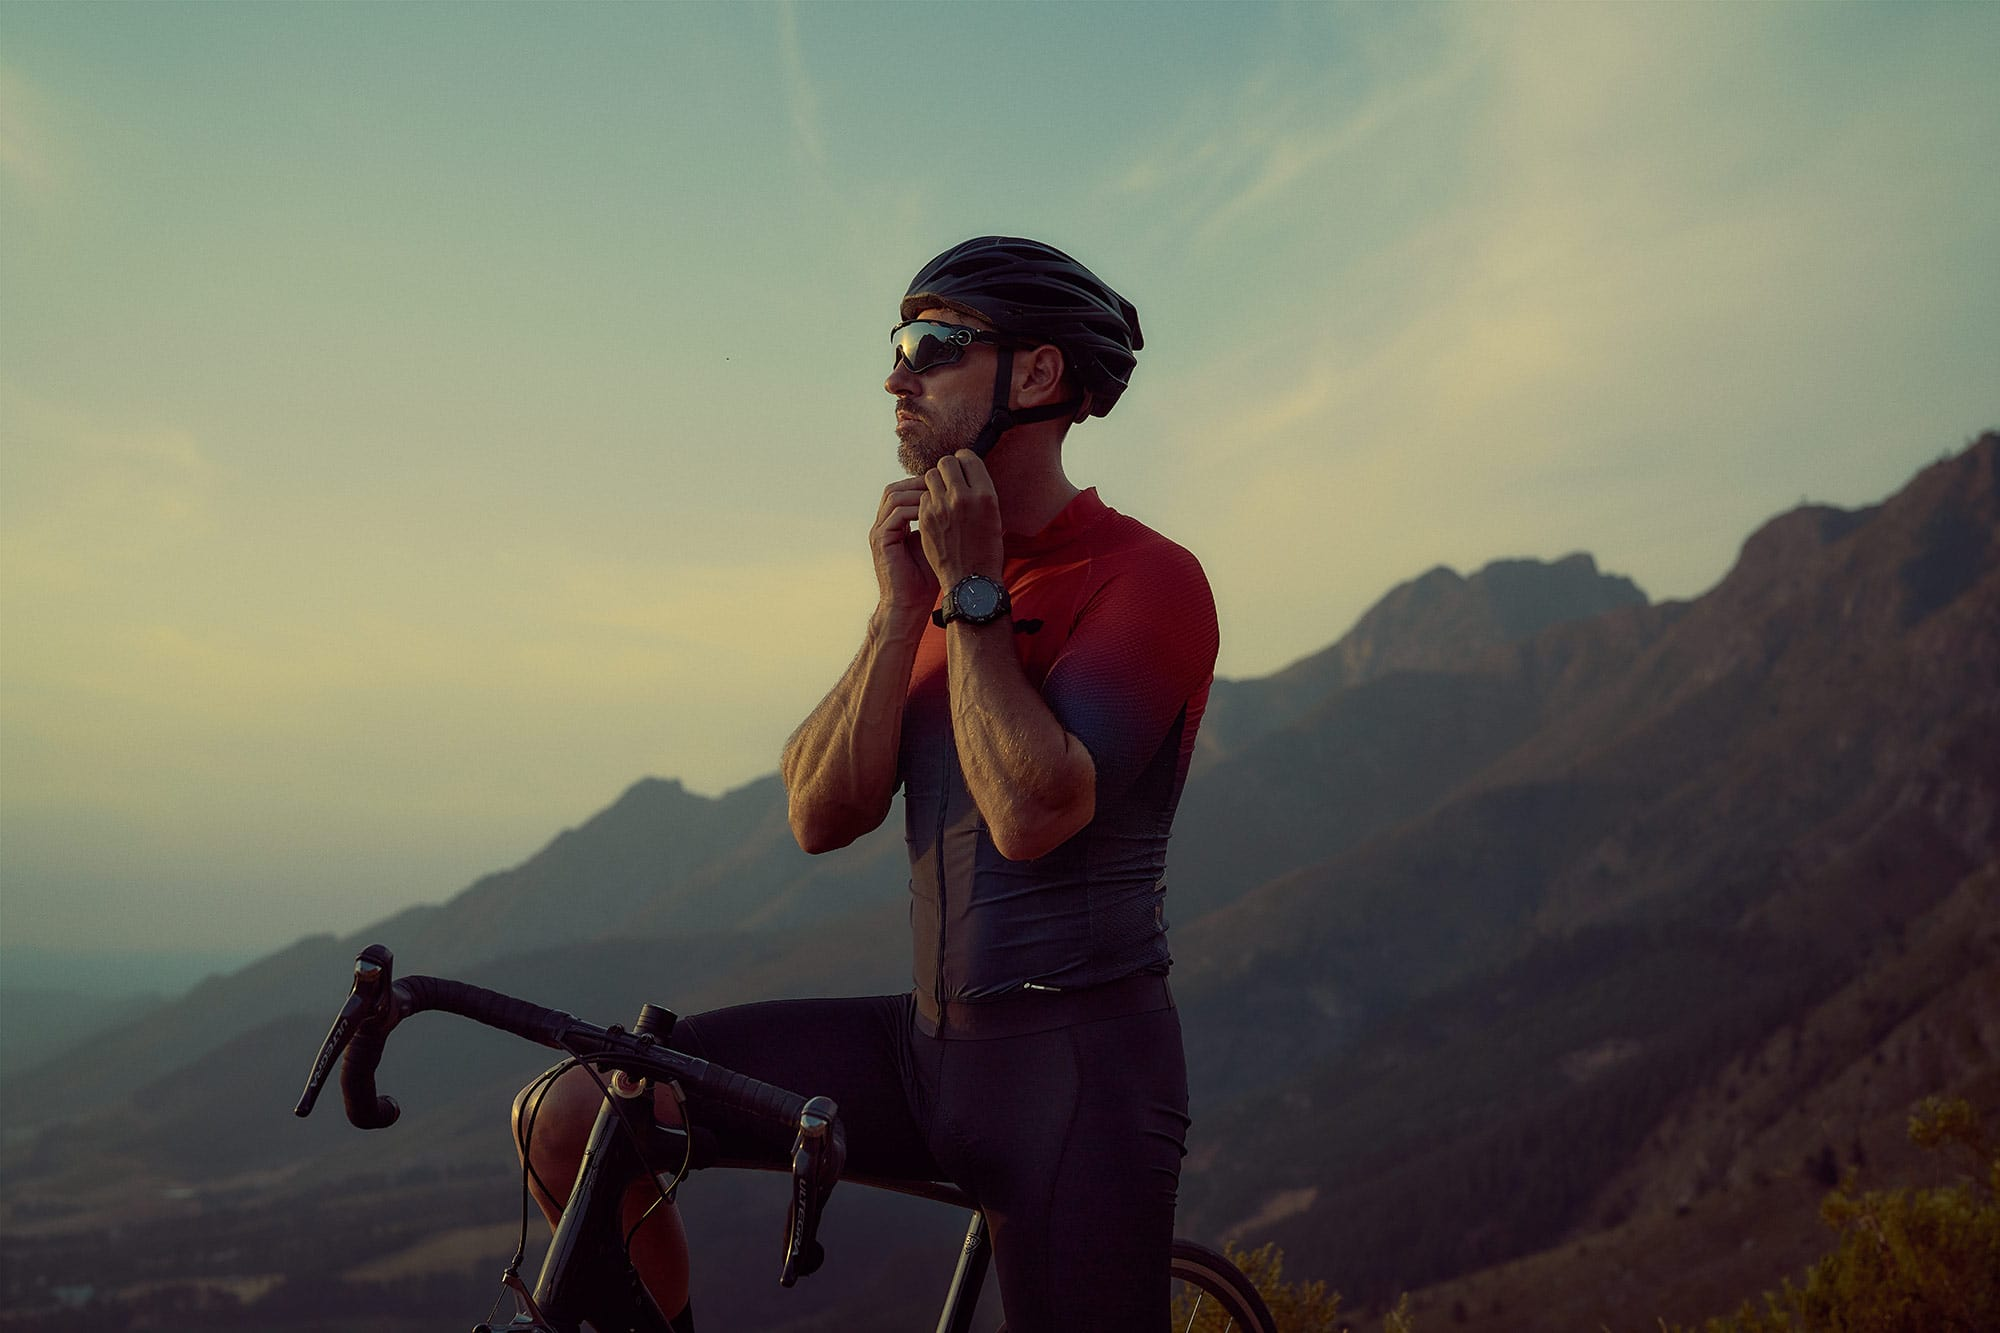 tissot t-touch active sports watch photographed late evening photography with cyclist in cape town